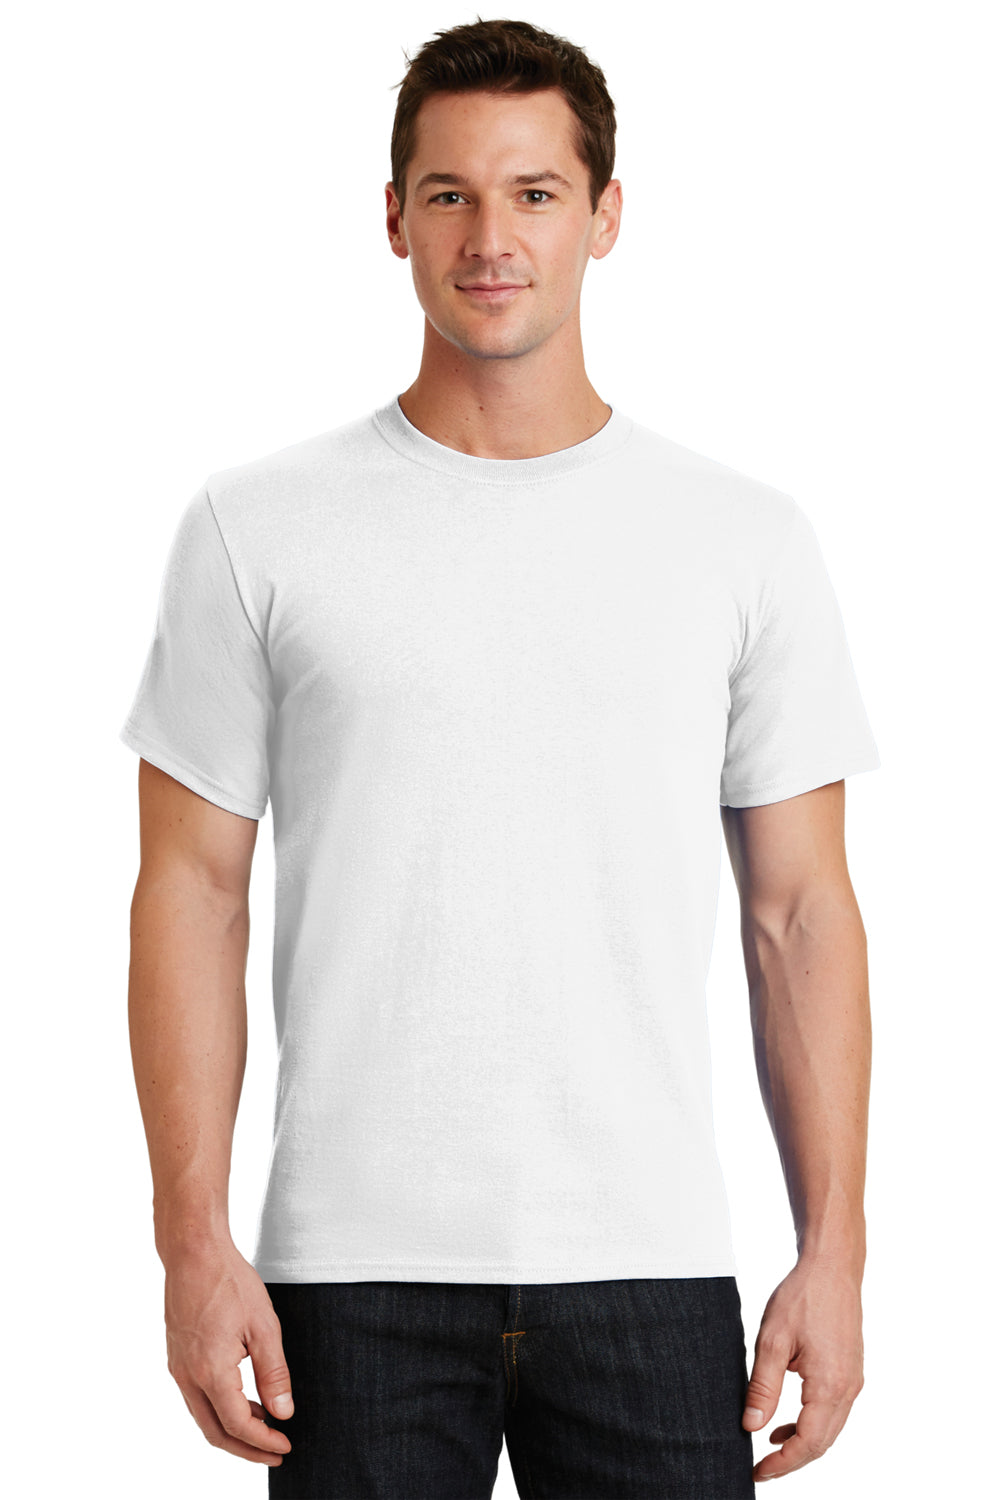 Port & Company PC61 Mens Essential Short Sleeve Crewneck T-Shirt White Front